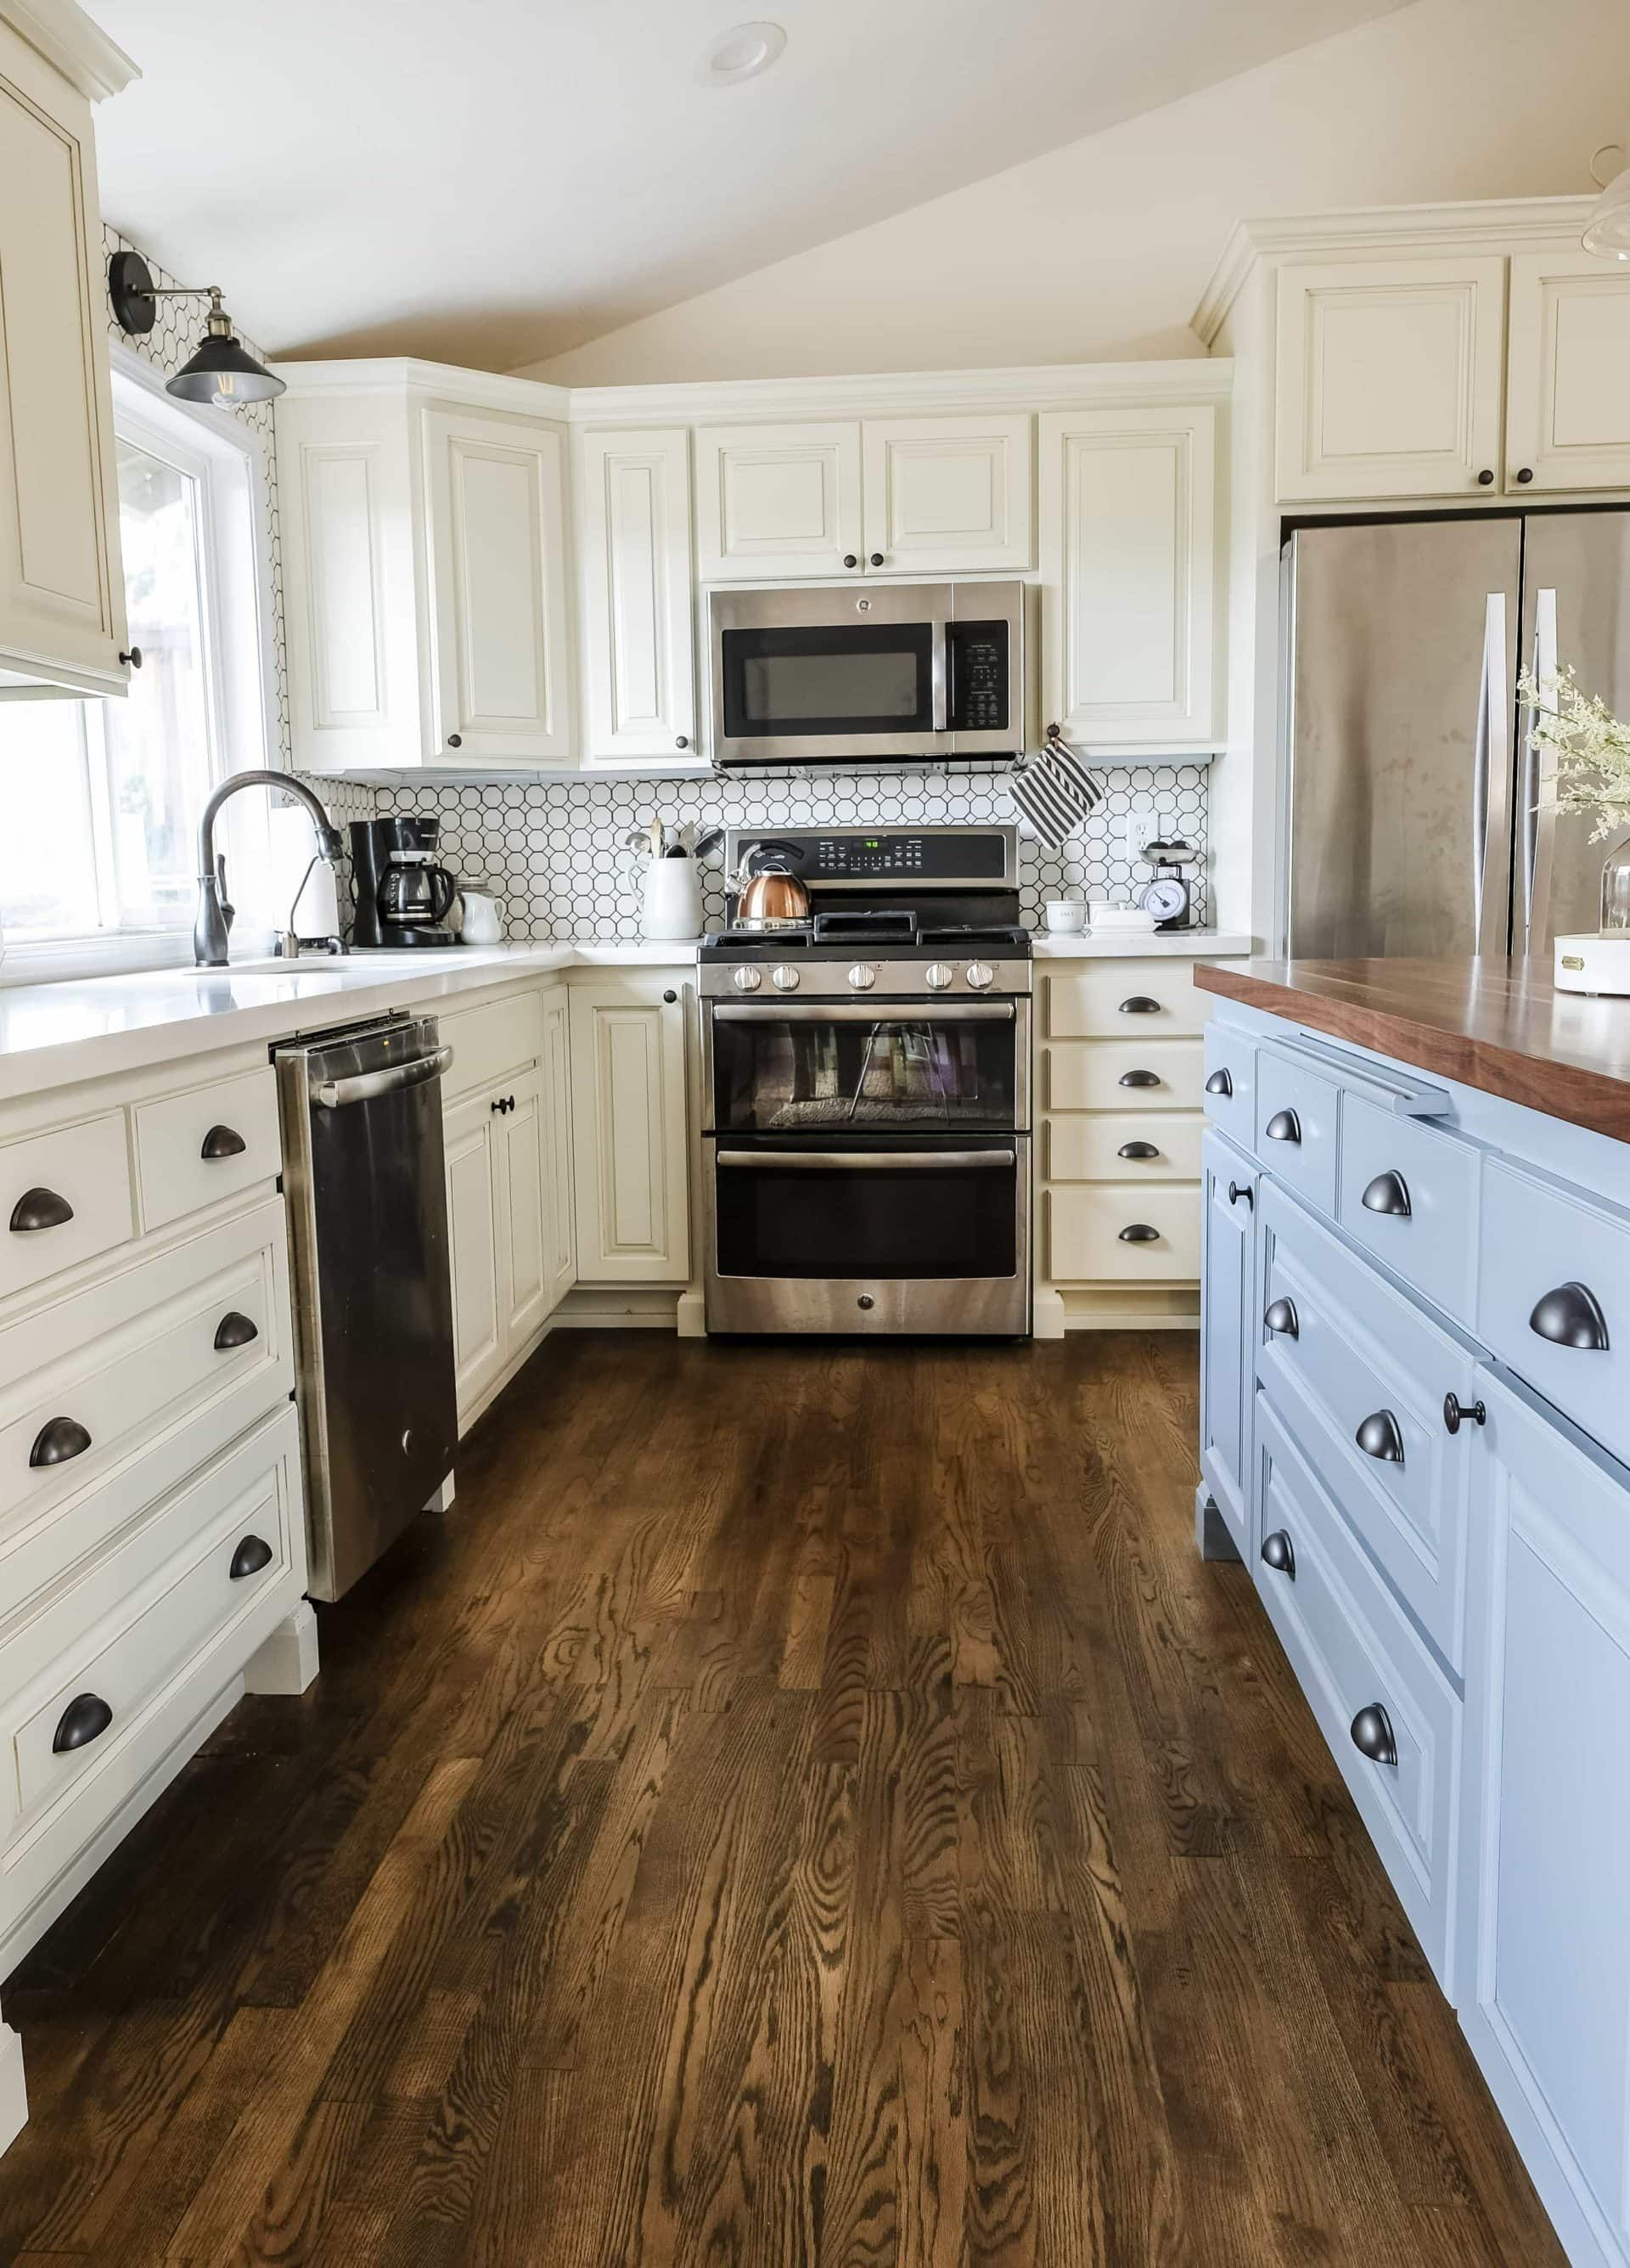 10 Awesome Amazon Finds To Upgrade Your Kitchen On A Budget Budget Kitchen Remodel Diy Kitchen Renovation Kitchen Design Diy